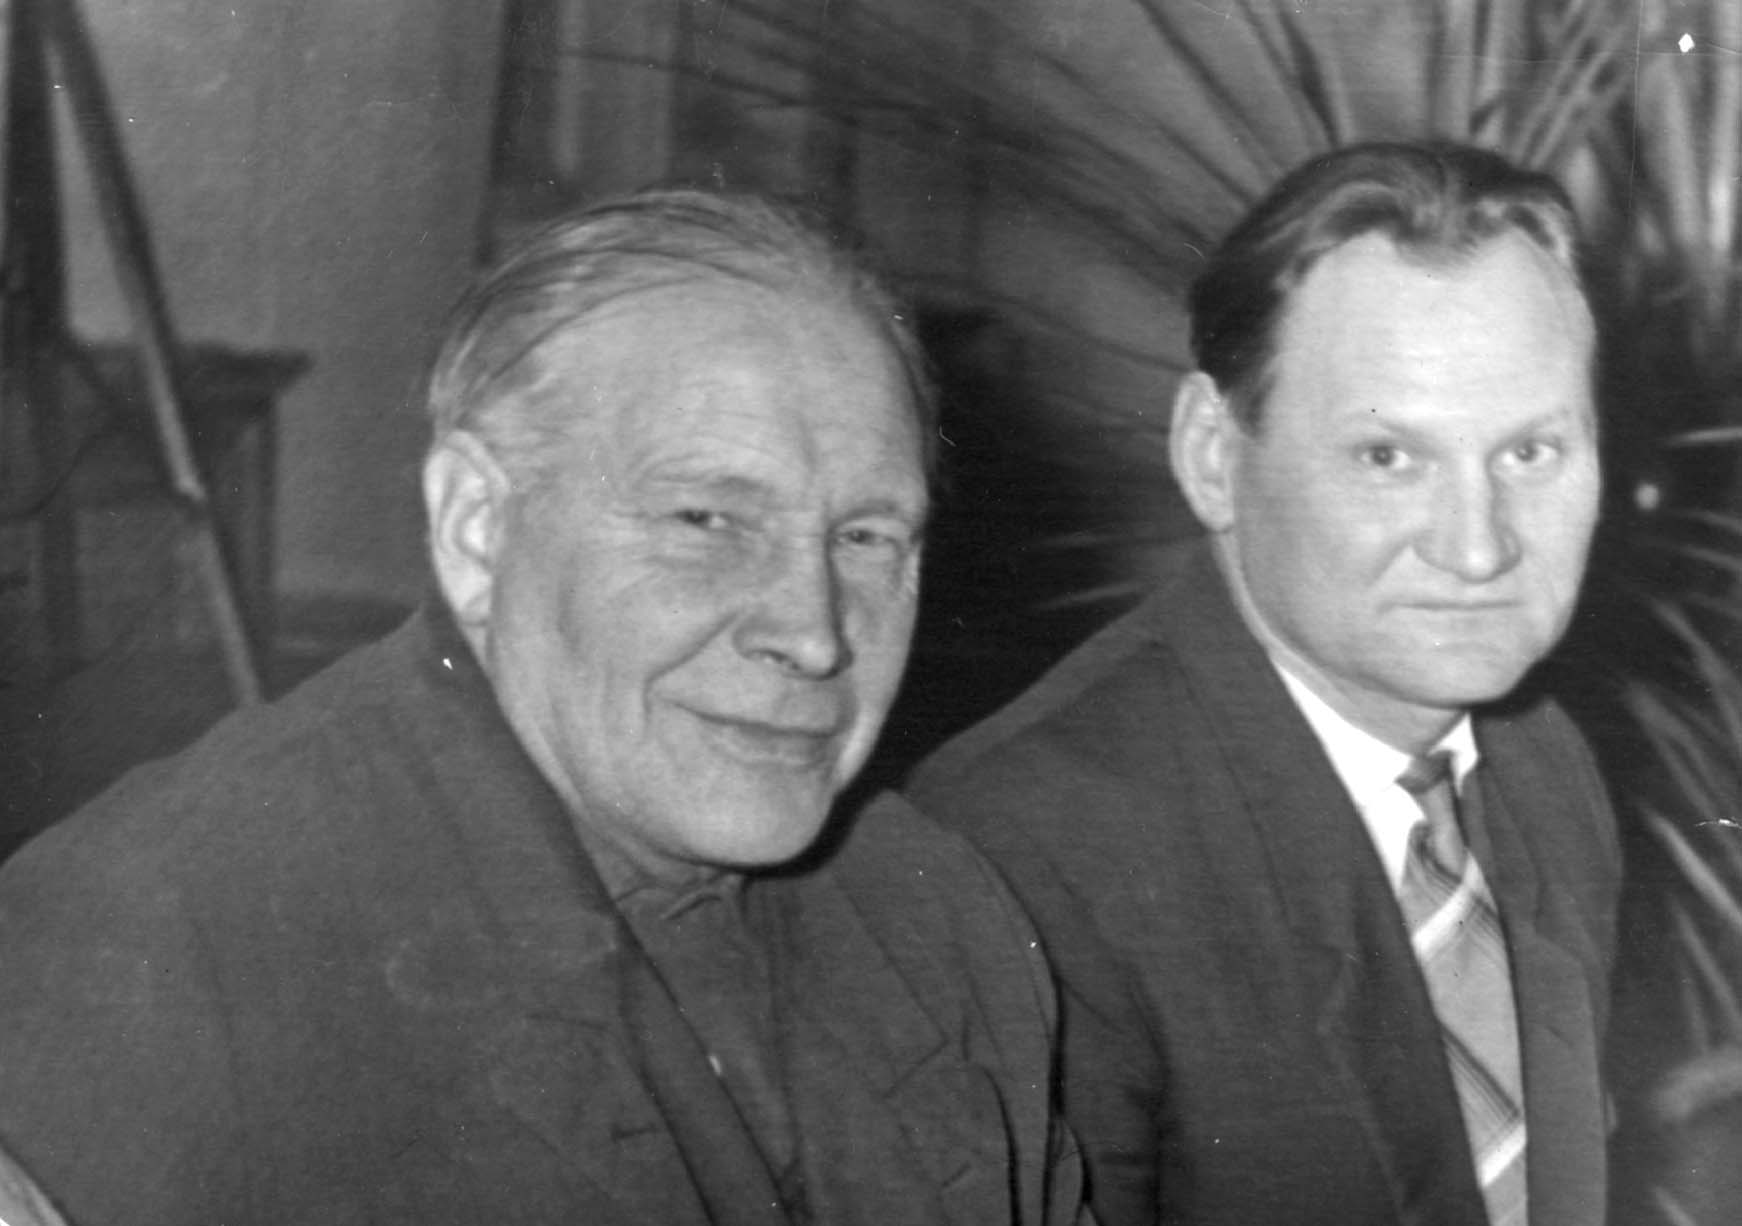 From right to left - Bruno Rozentals, Janis Lipke, 1960-ies